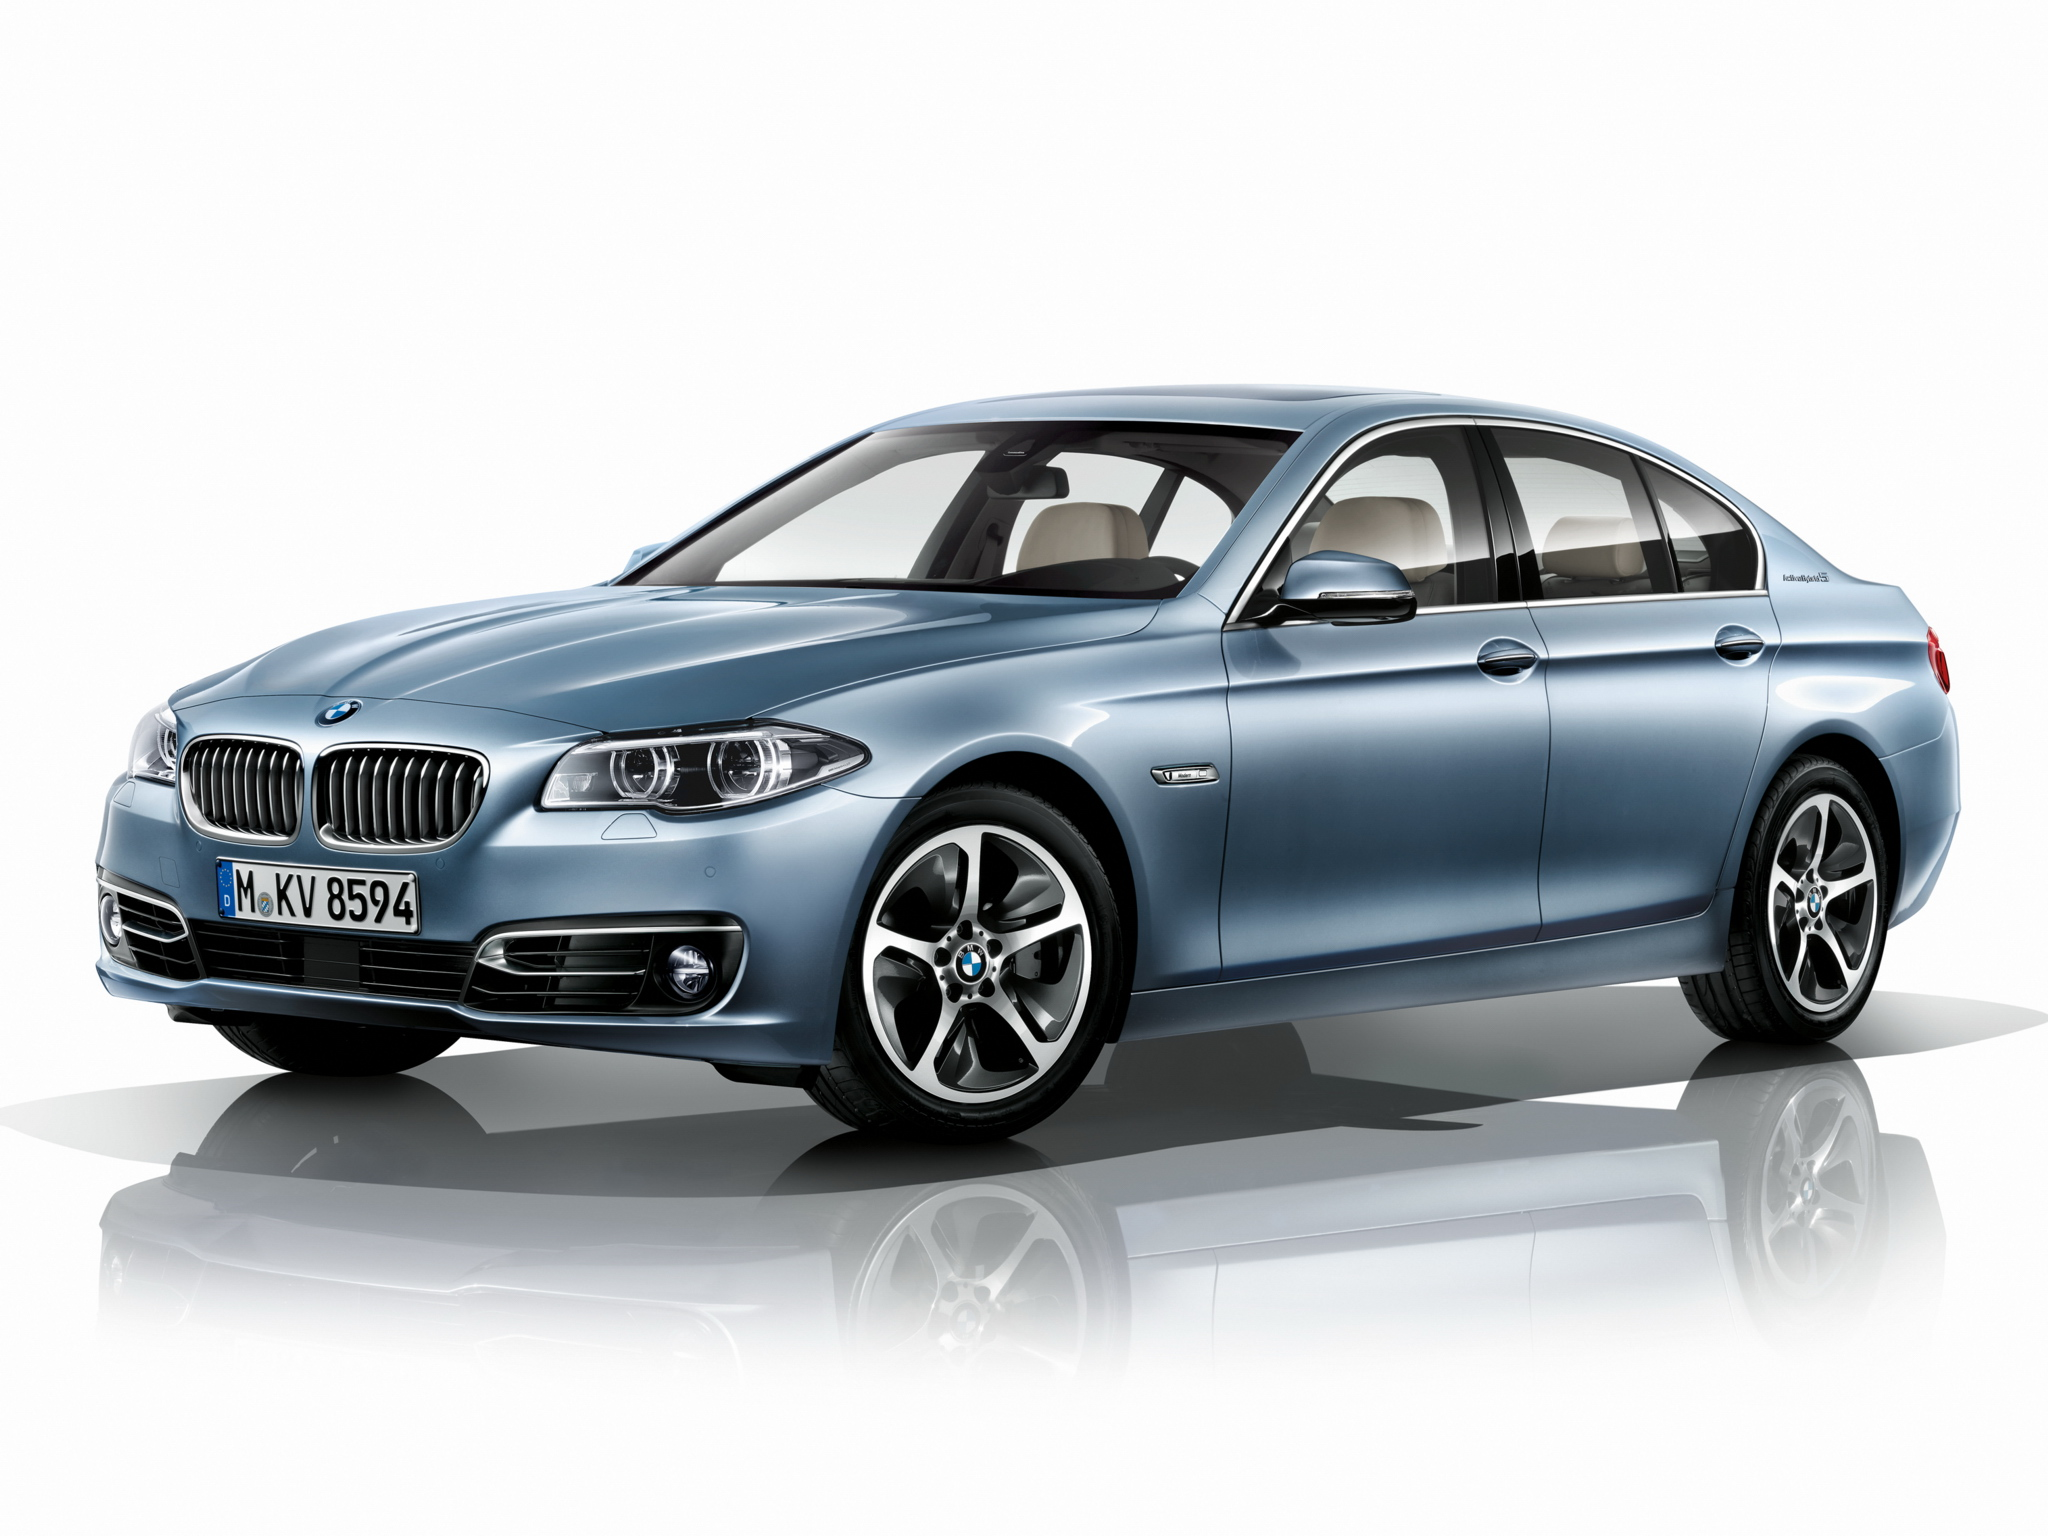 BMW 5 series ActiveHybrid 2013 photo - 1